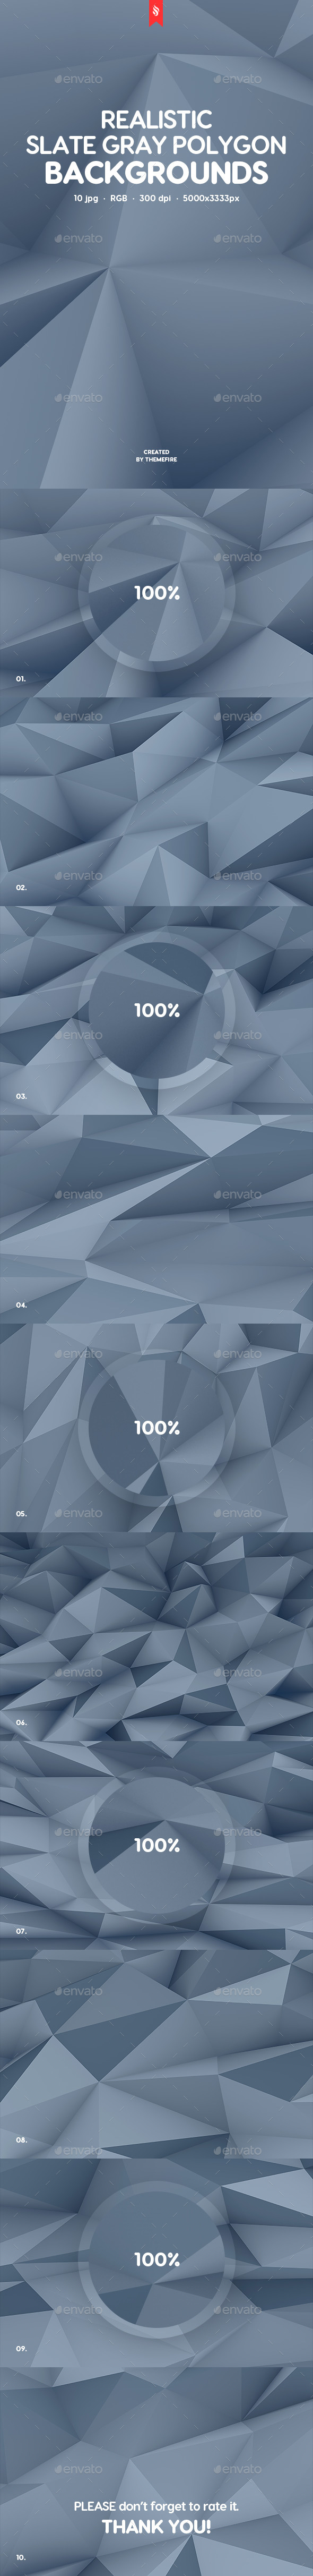 Realistic Slate Gray Polygon Backgrounds - Backgrounds Graphics